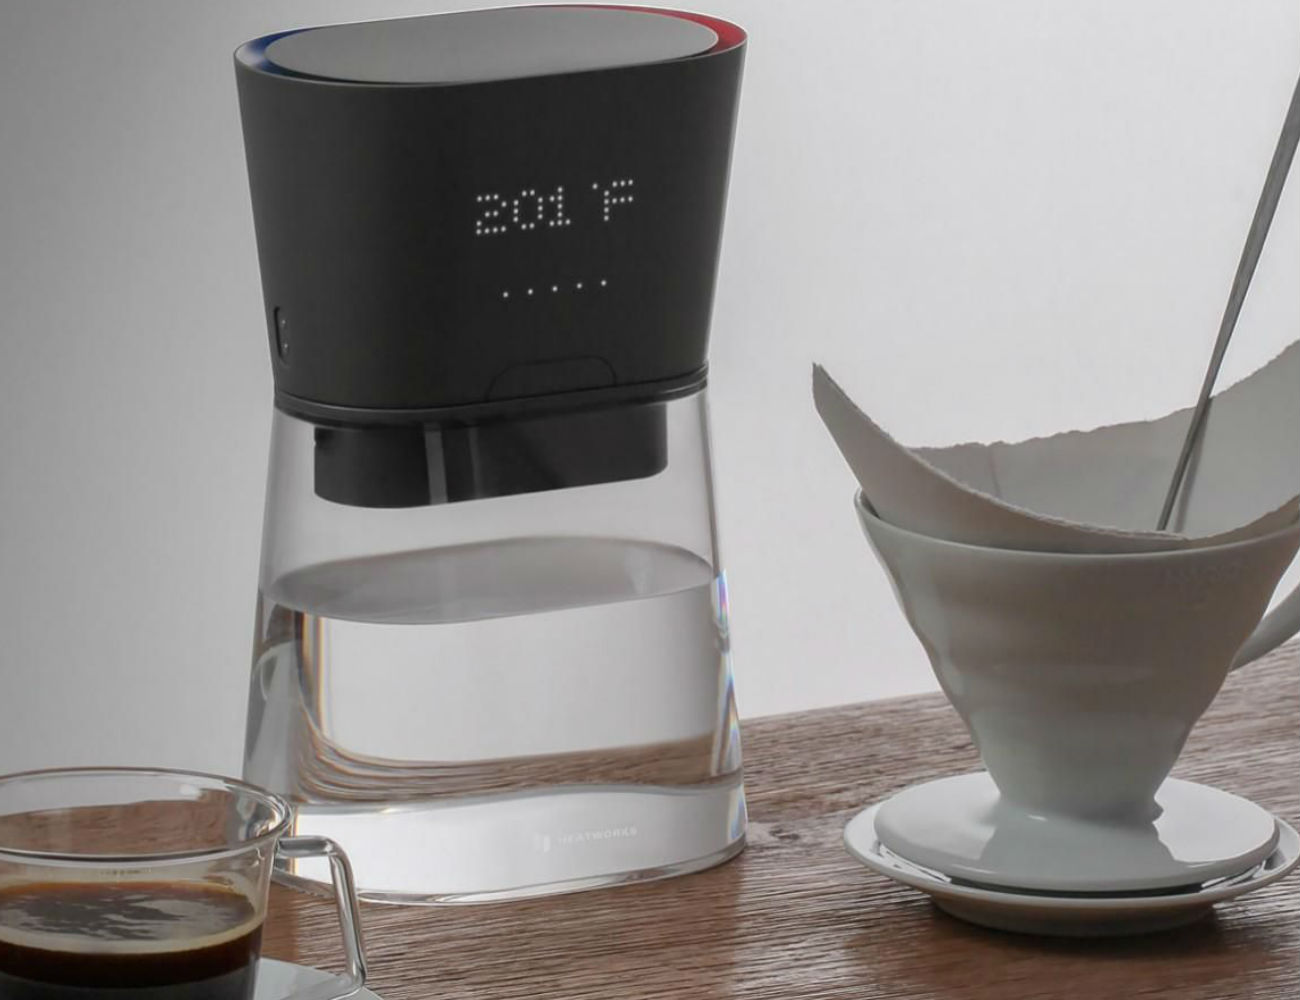 Heatworks DUO Water-Heating Carafe